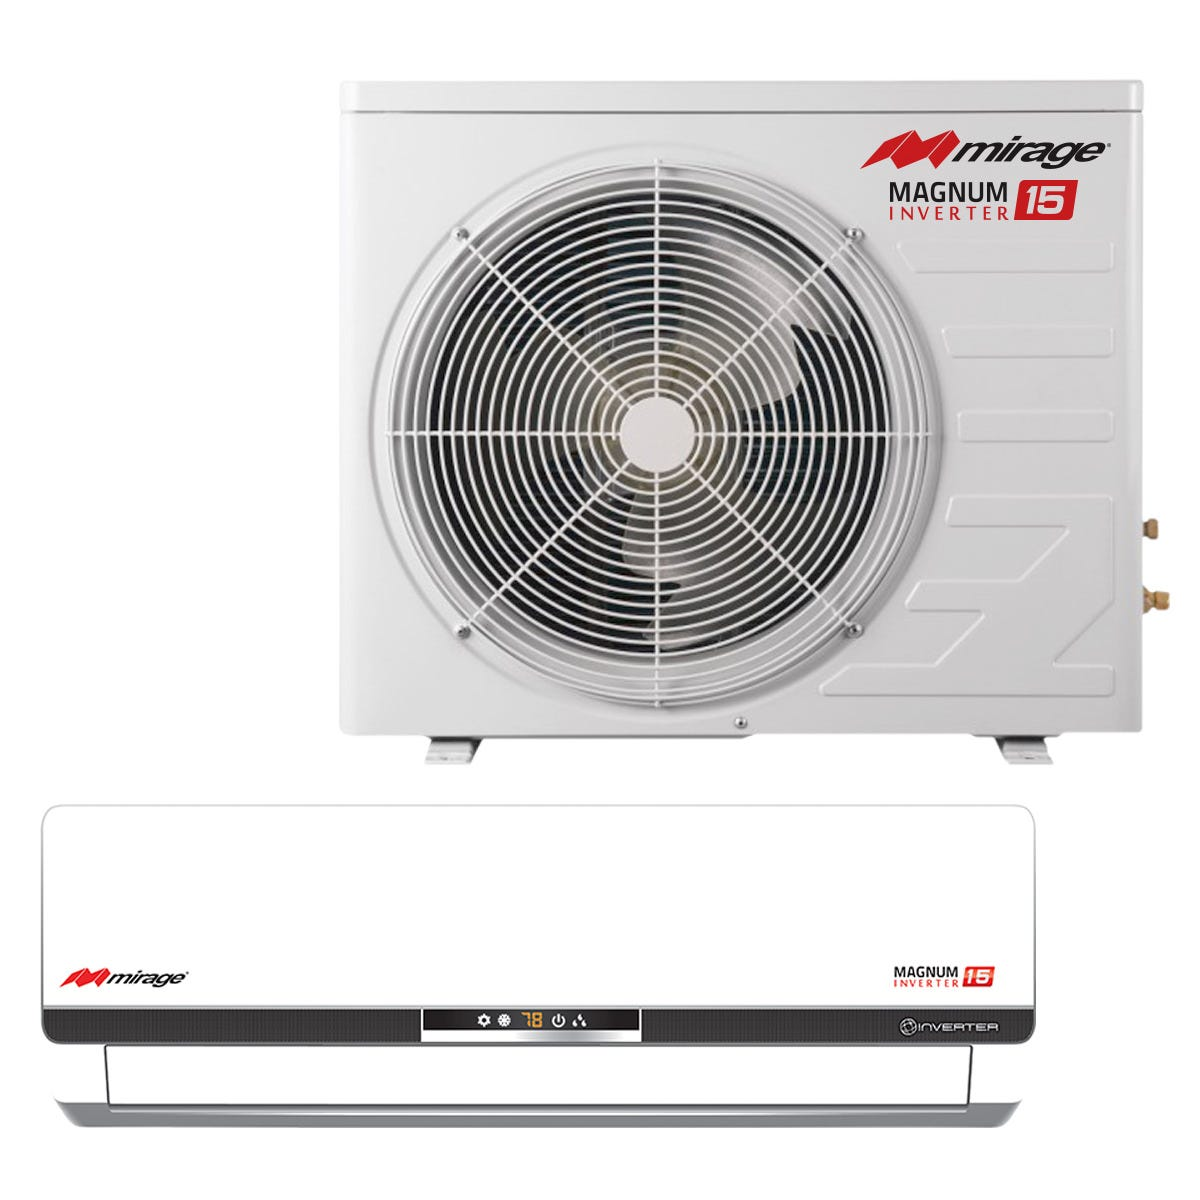 Mirage 16 SEER 24,000 BTU Mini Split Air Conditioner The Mirage Magnum 16 SEER represents the state-of-the-art in split air conditioner systems. These units have proven themselves throughout Europe, Africa, Australia, Asia and the Middle East for many years, and now we're proud to offer them to you. They offer many features that make them exceedingly well-suited for horticultural climate control. These Mirage Magnum 16 SEER units having heating and cooling functions. The Magnum 16's inverter technology ensures lower operation costs, longer compressor life, and more effective room cooling than A/C systems of comparable price and capacity. The speed of its unique inverter compressor (double that of a conventional compressor), provides a much faster transition to your desired room temperature. The Magnum 16 also features a special hydrophobic coating on the coils which prevents fungal and calcium buildup, as well as rifled copper coil lines which bring superior cooling efficiency. Consider the additional features such as automatic speed, multiface coil technology for more efficient heat exchange, internal monitoring system, remote control, an efficiency rating of 16 SEER (Season Energy Efficiency Ratio), and up to 40% savings on electricity costs over legacy A/C systems of comparable BTU specs, and it's easy to see why Mirage quality is no illusion! Mirage Mini Split Air Conditioner: 1 year warranty on parts / 5 year compressor (void if not installed by HVAC professional) Use alone on a 15A circuit breaker Includes 25ft lineset Cooling temperature range: 5°F to 115°F Heating temperature range: -2°F to 75°F.